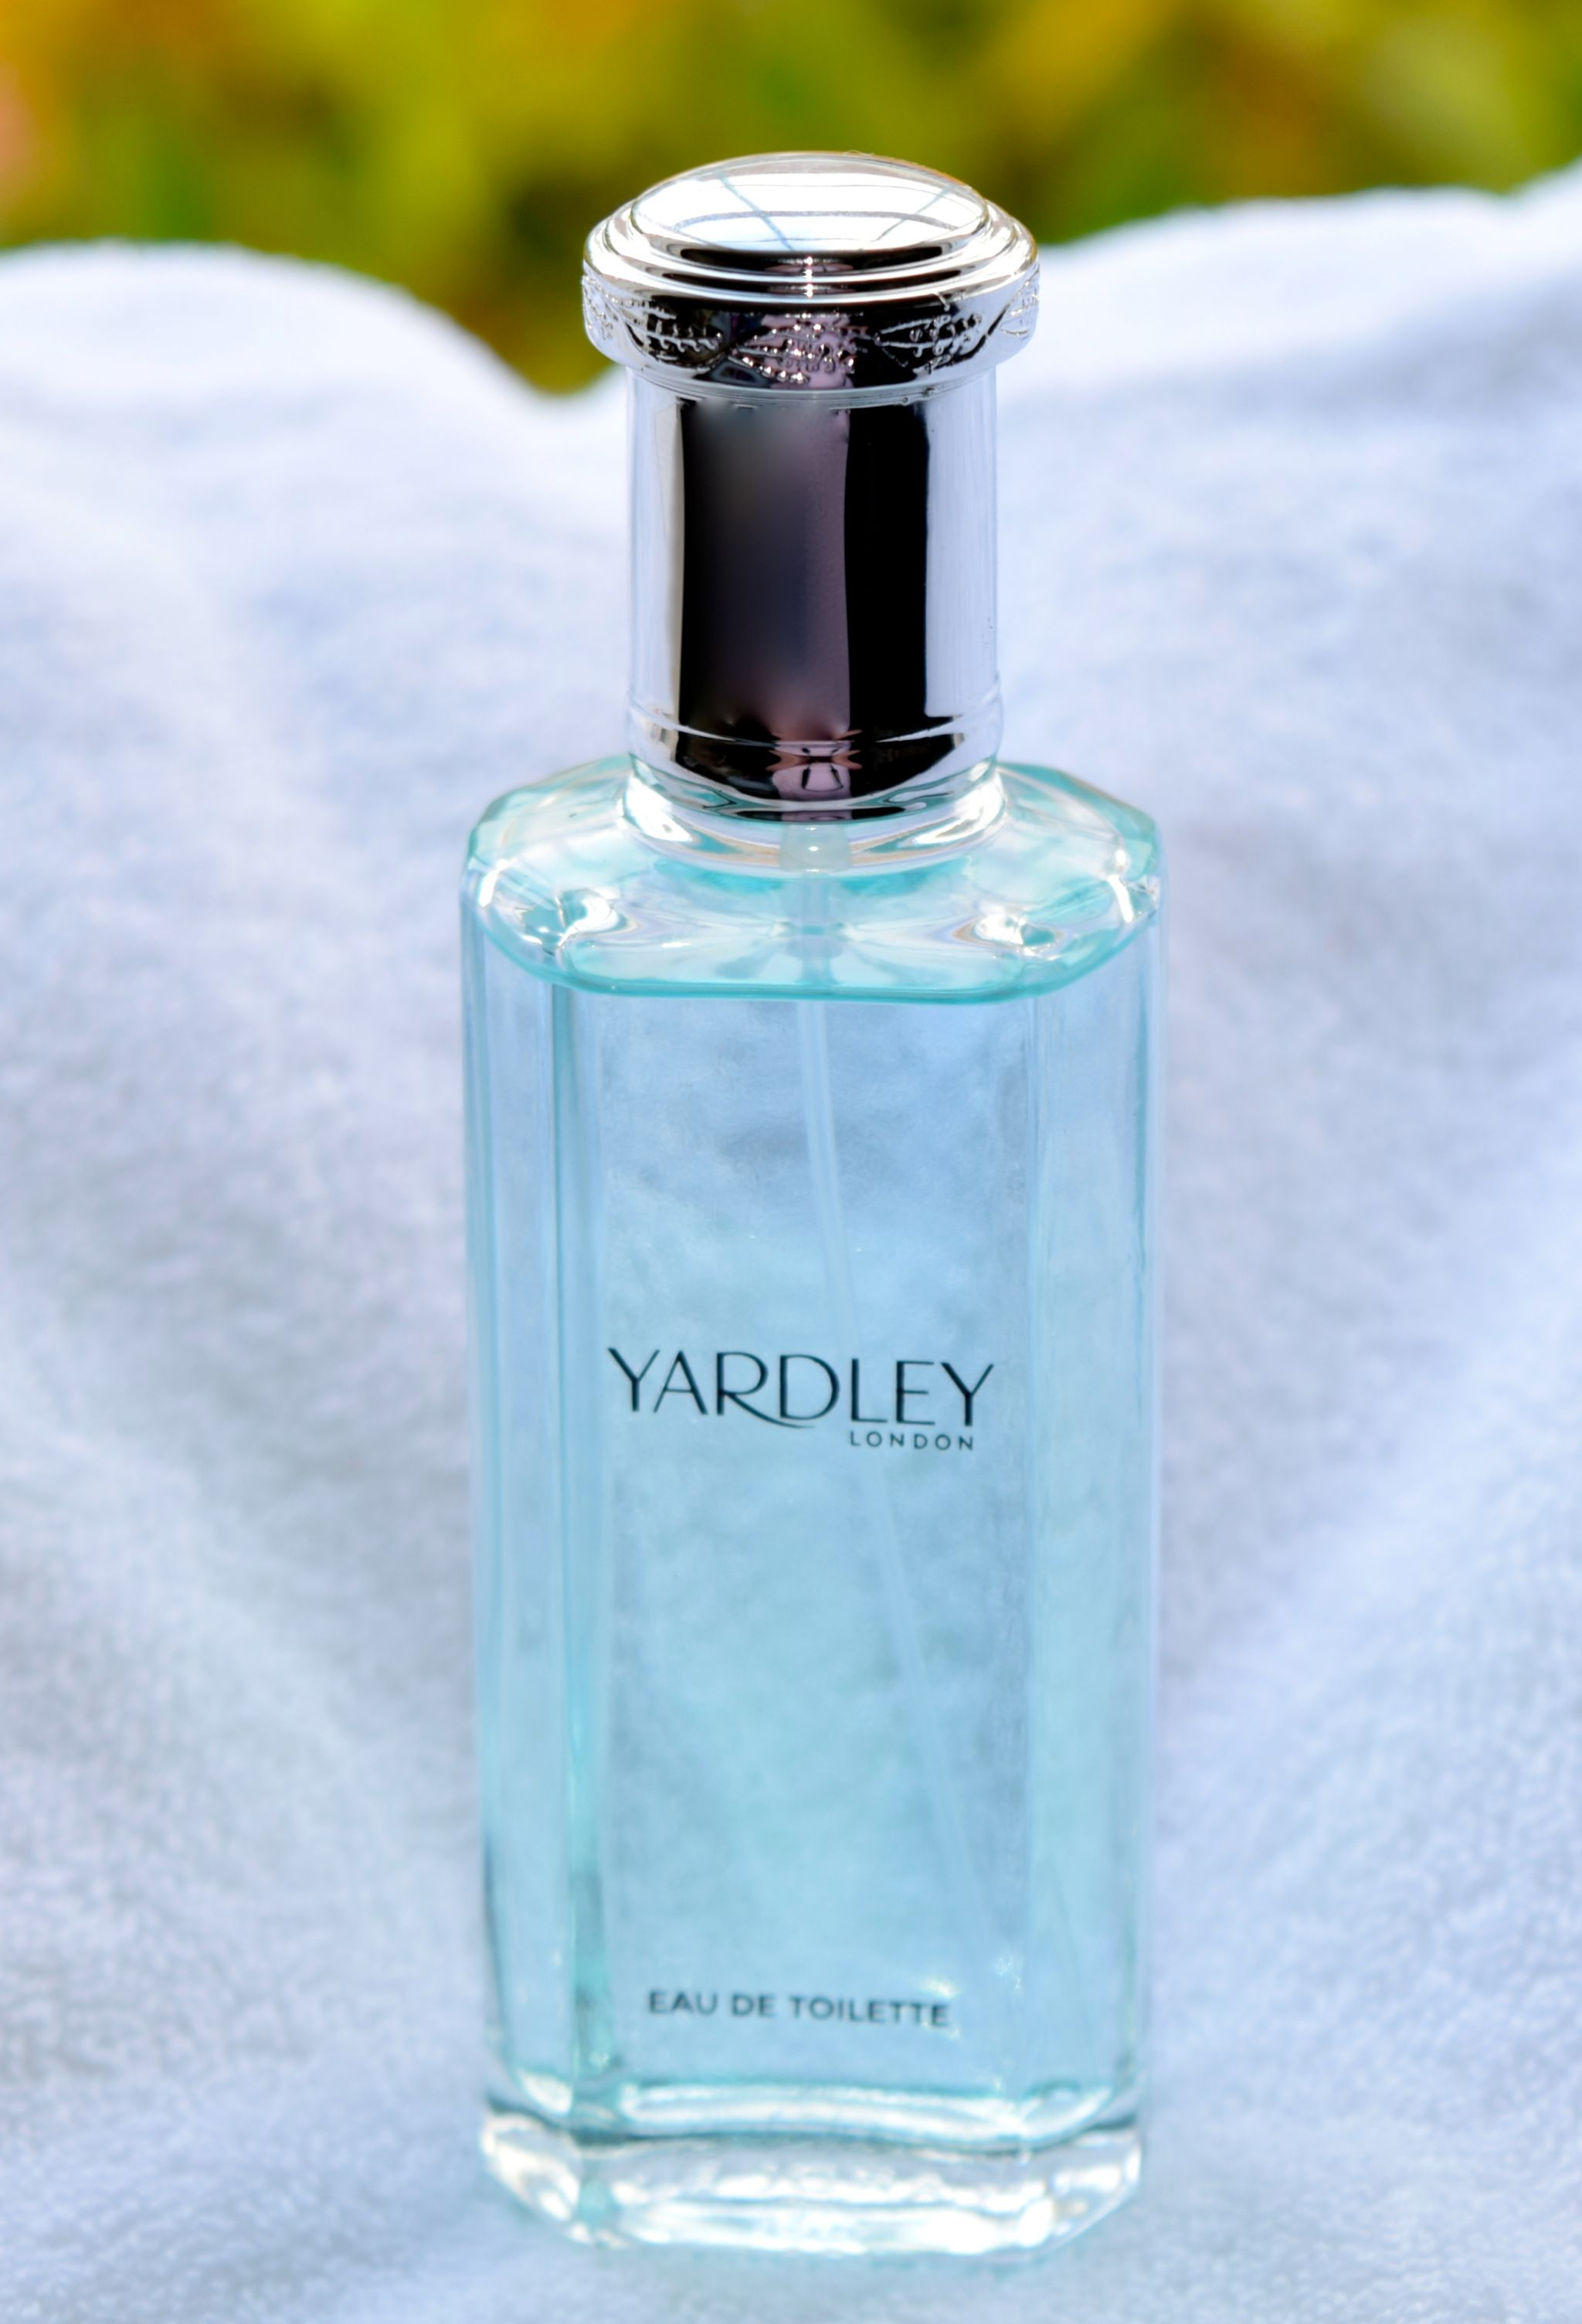 Yardley English Bluebell Eau de Toilette 2